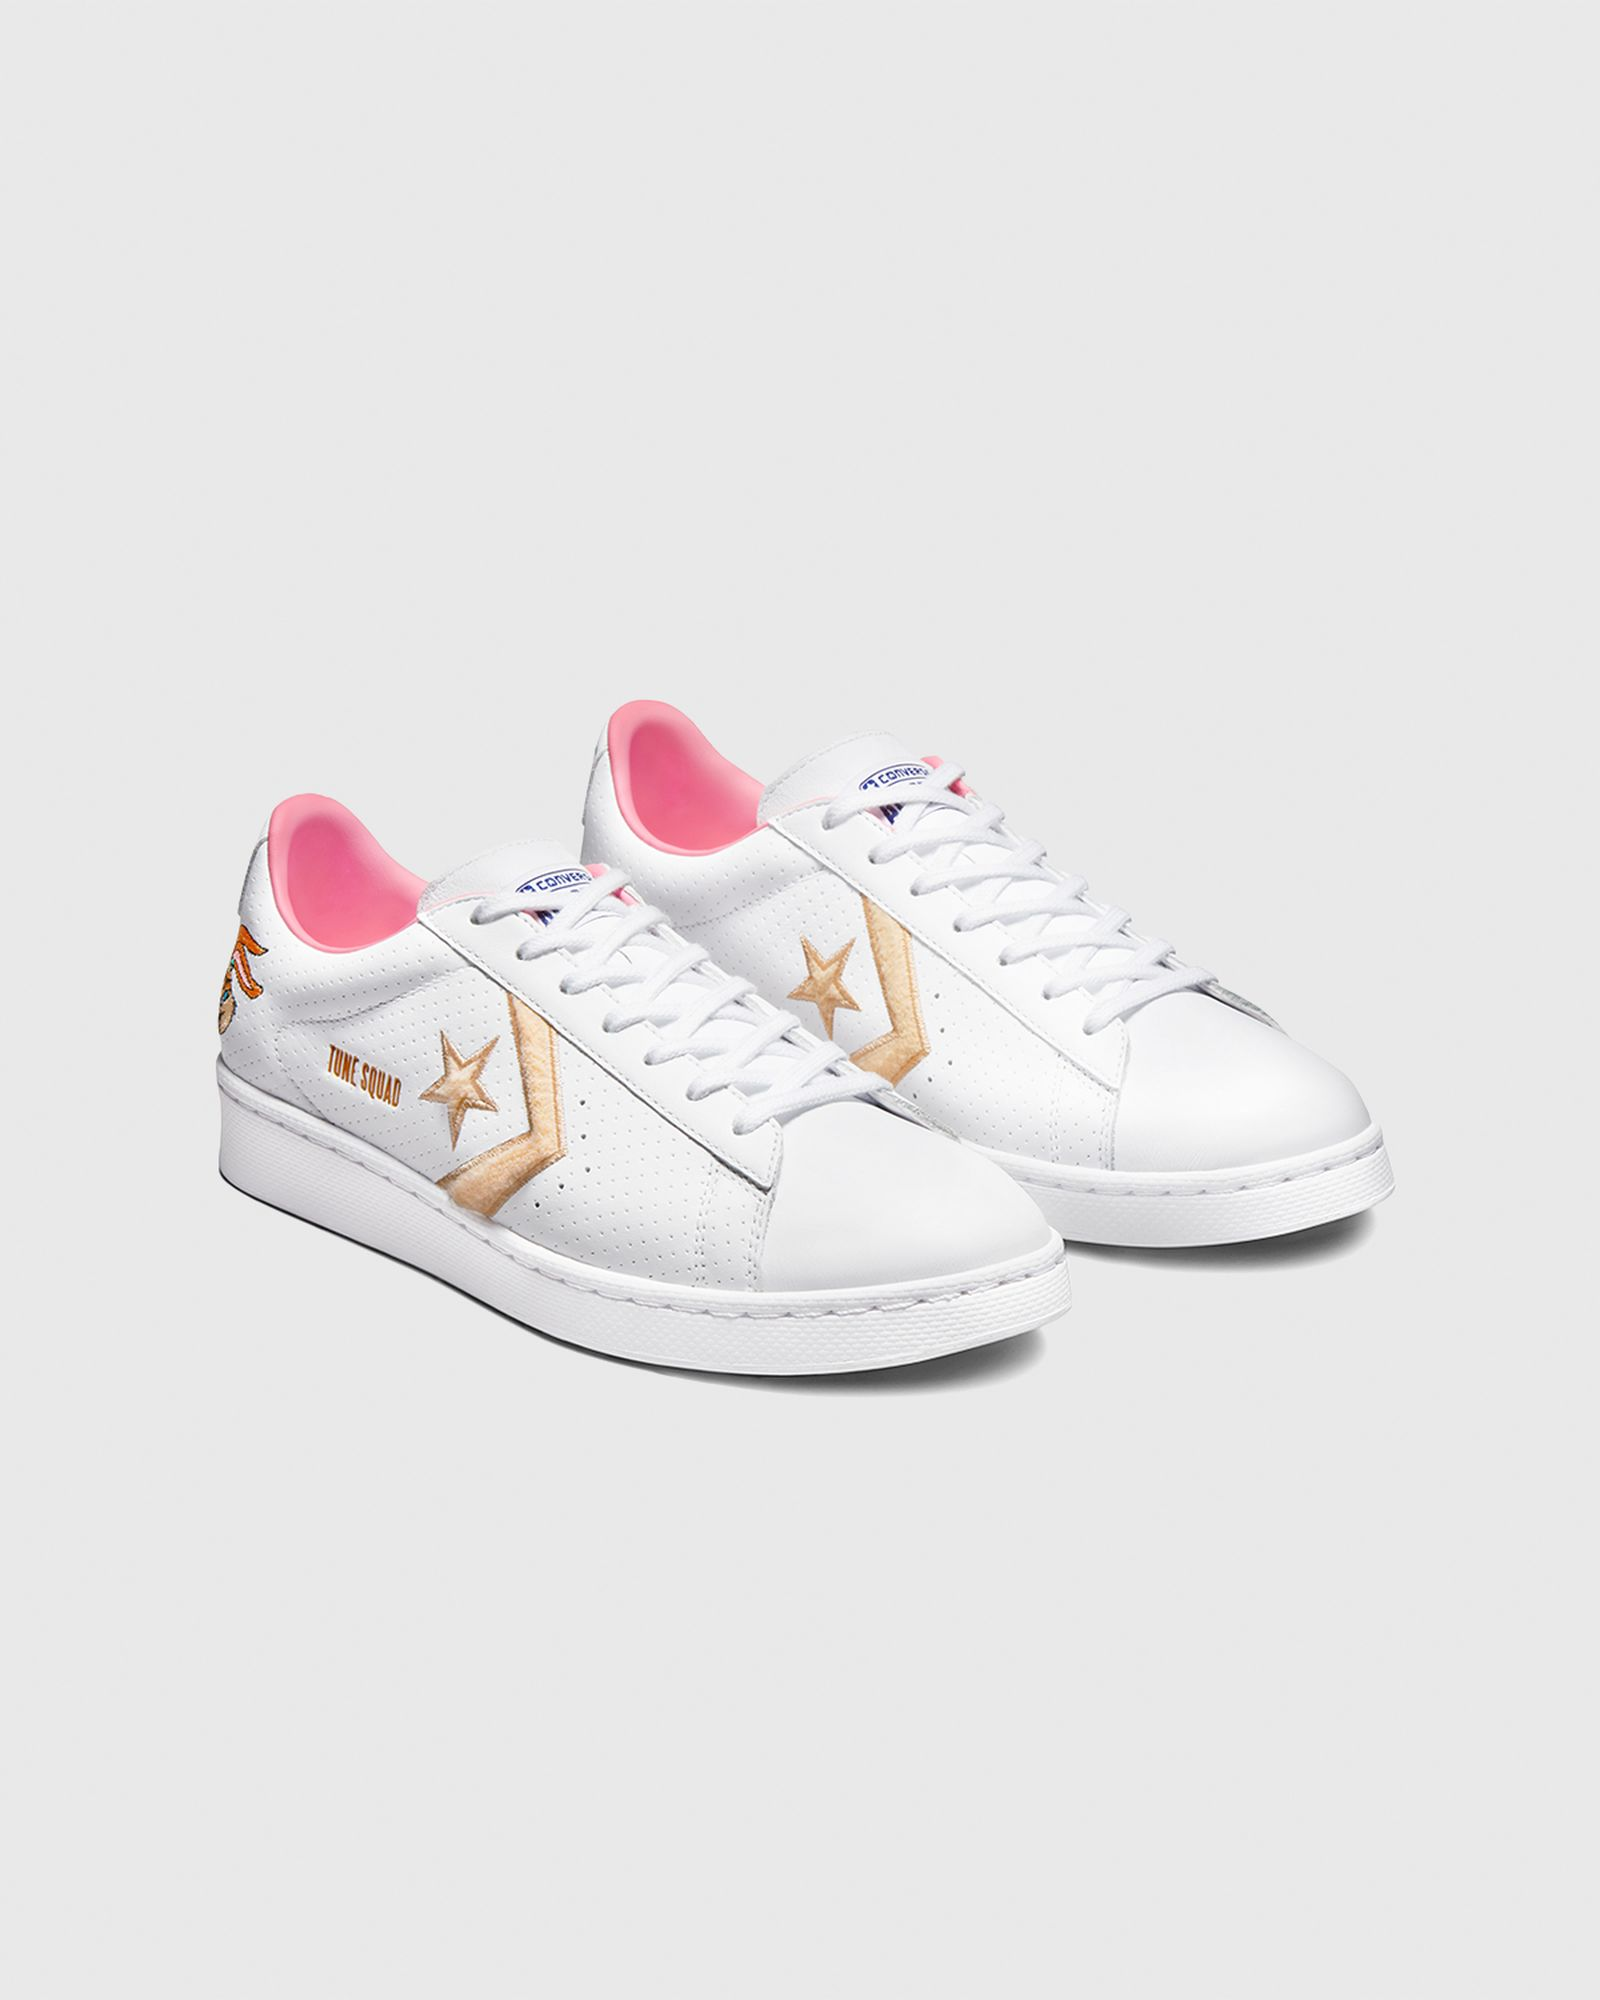 converse-space-jam-2-pack-release-date-price-lola-bunny-04